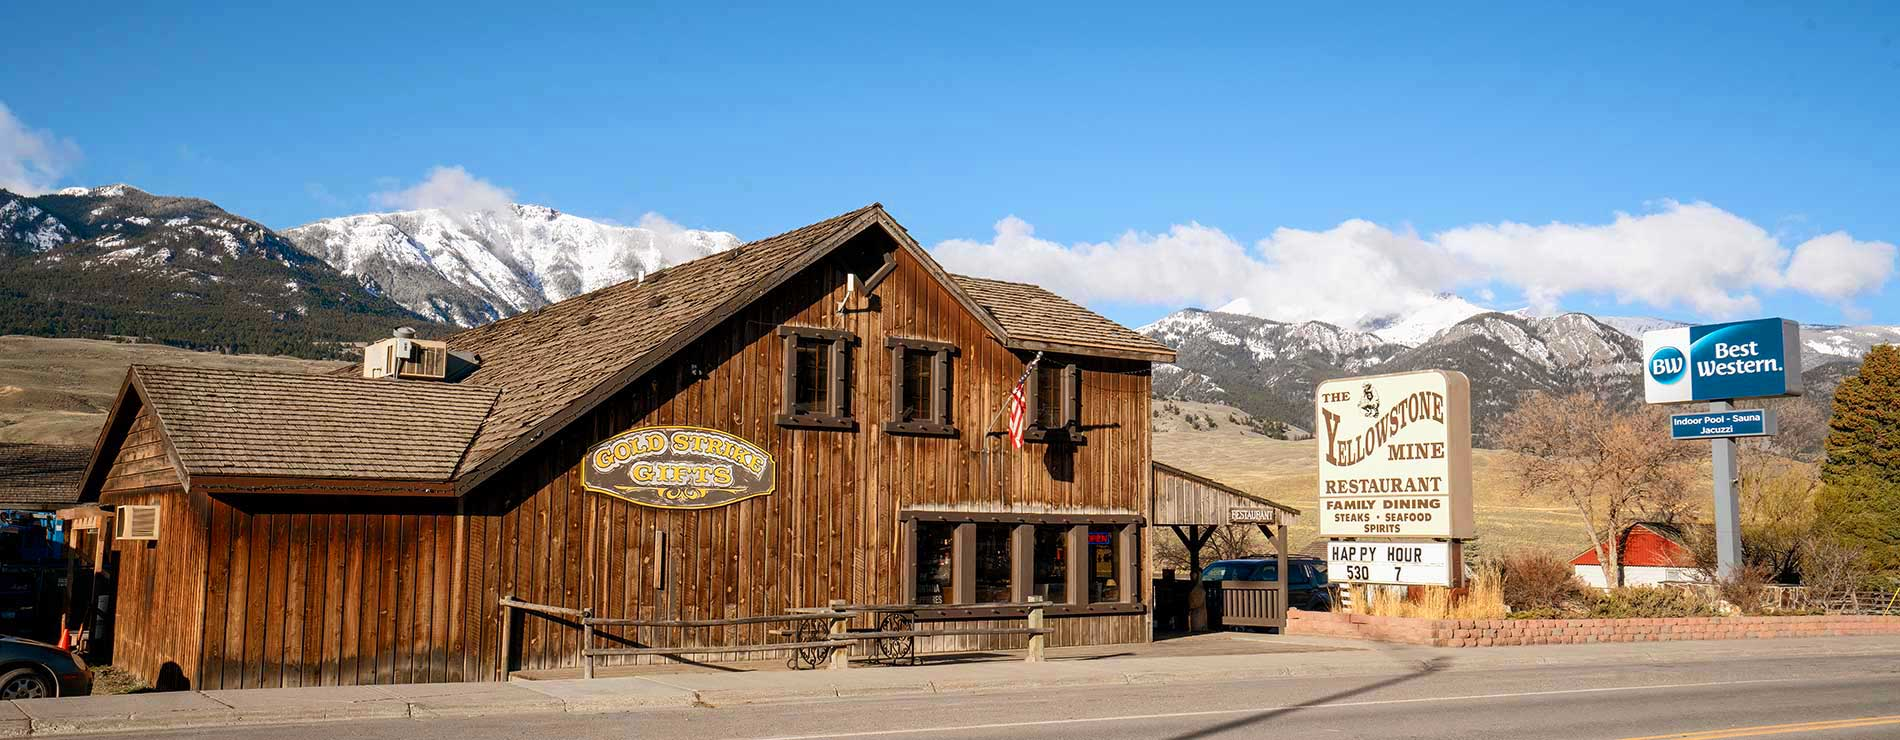 Best Western by Mammoth Hot Springs in Gardiner, MT